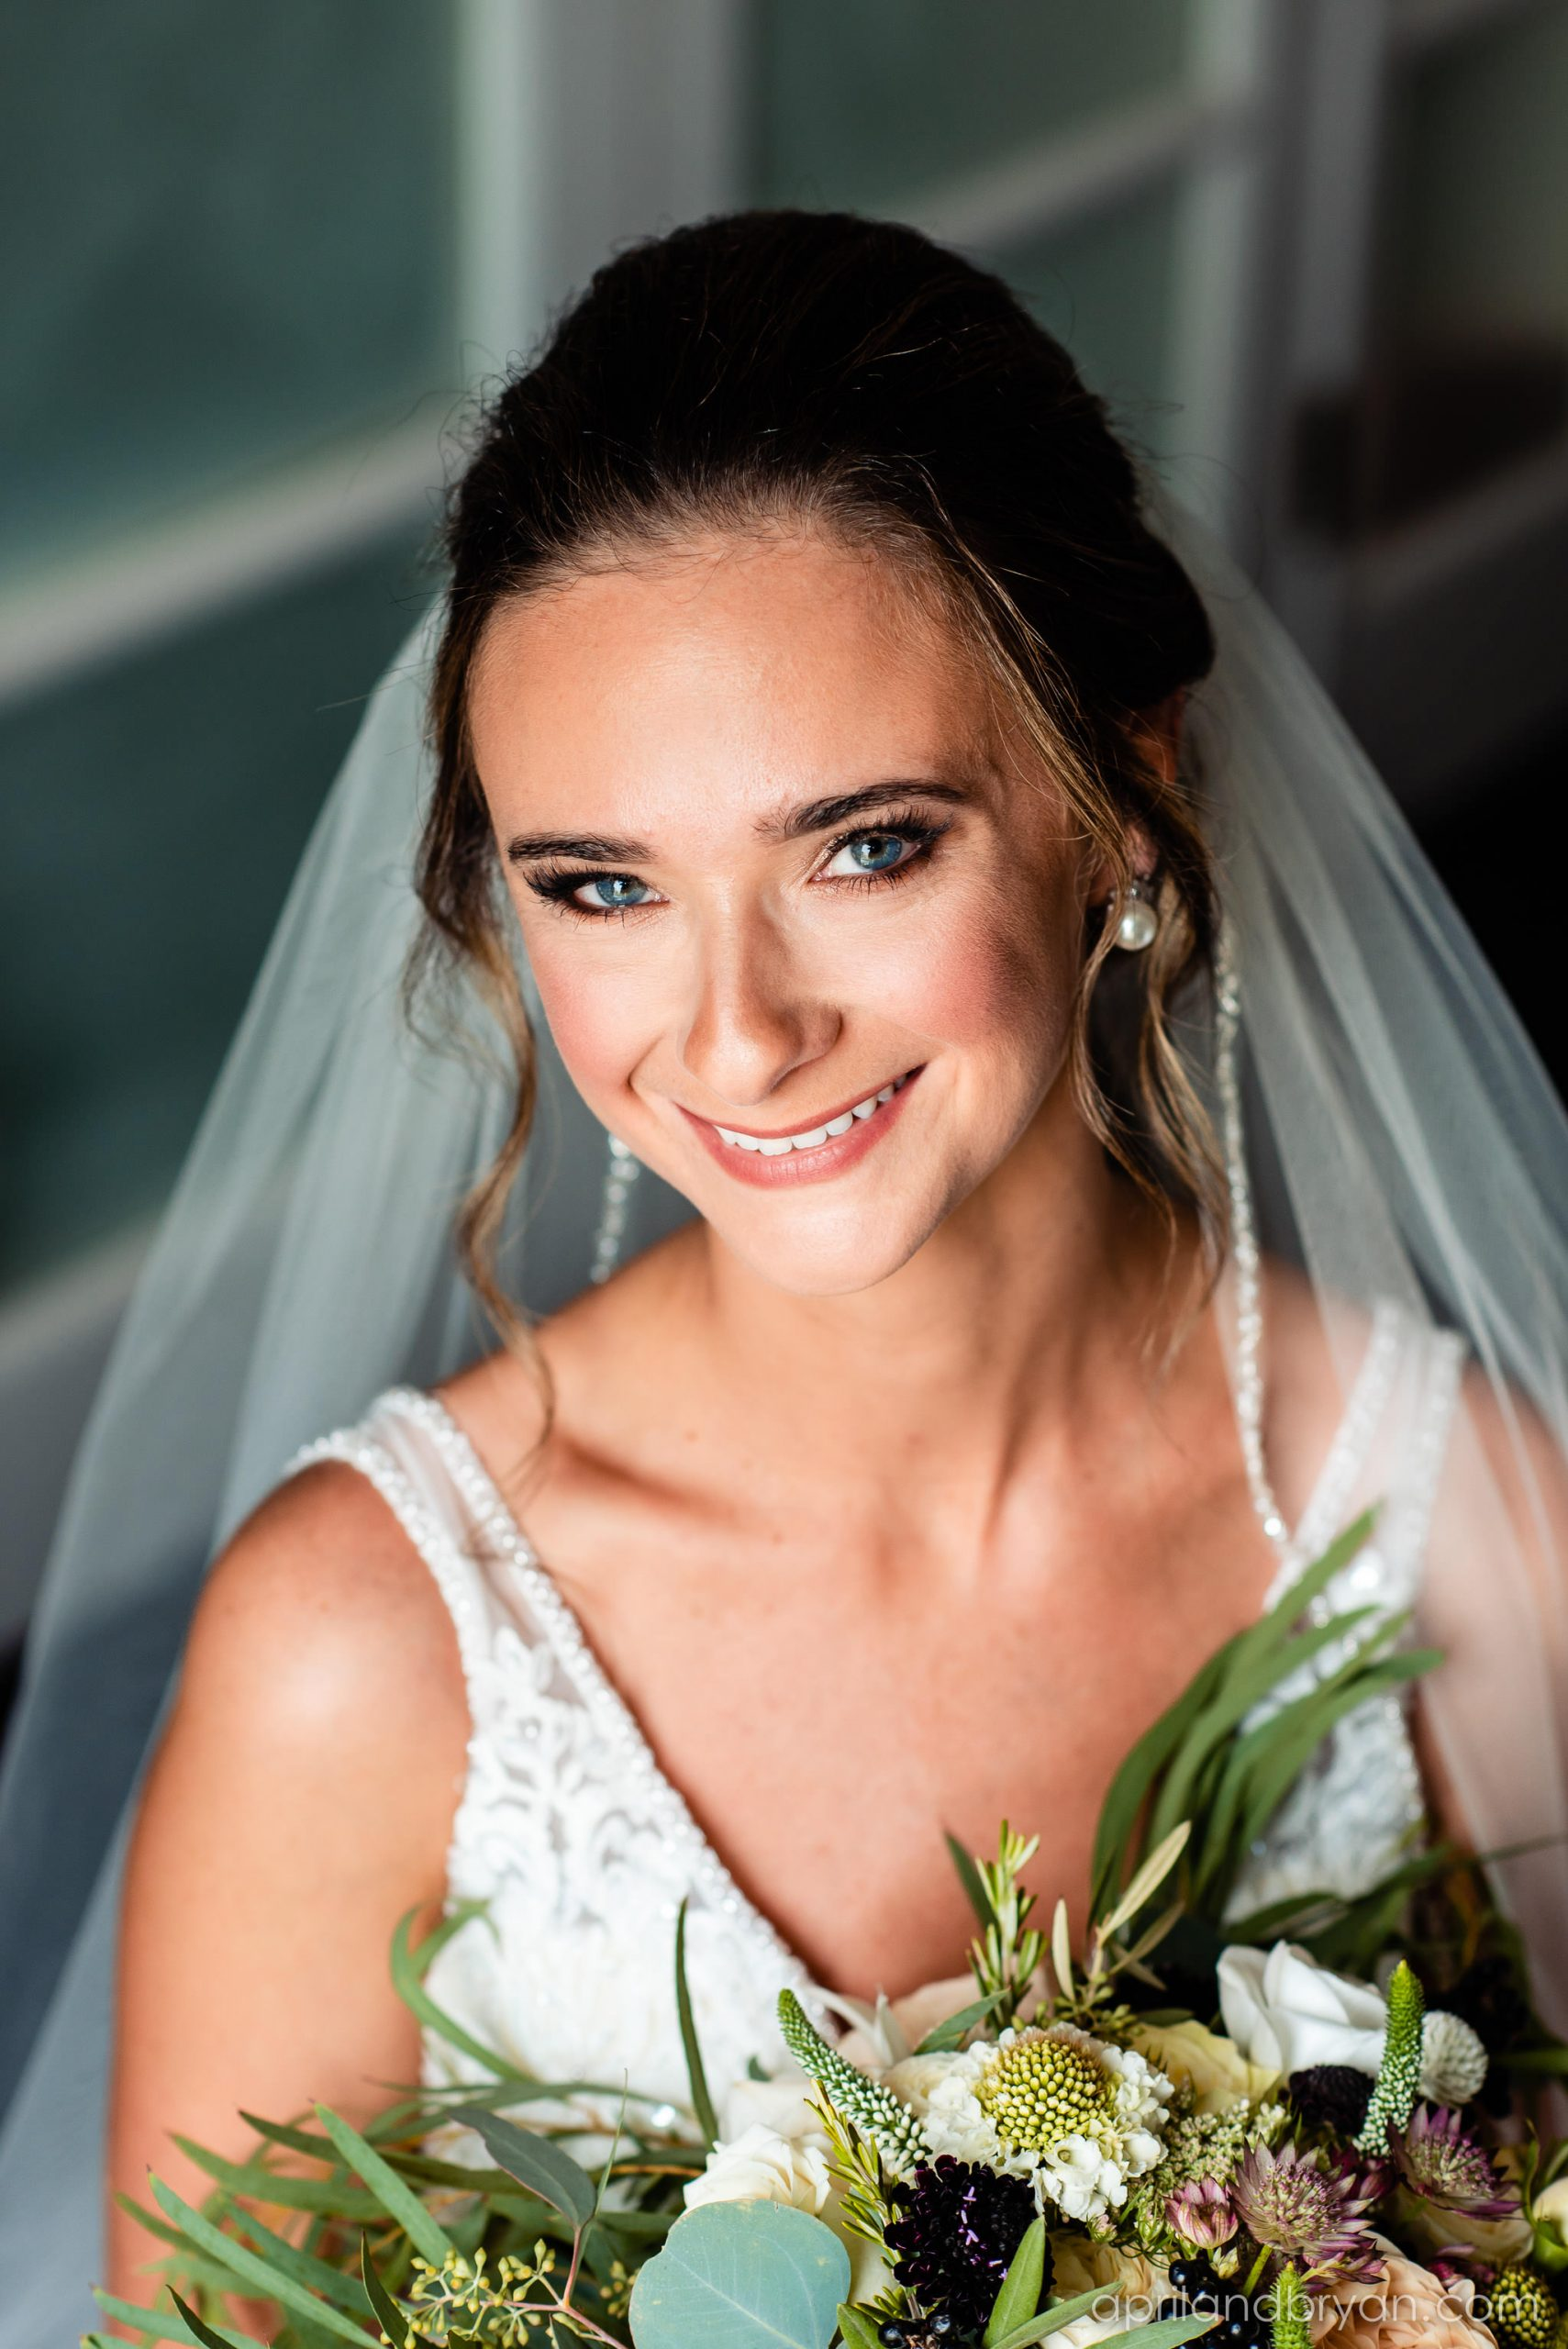 A close-up of the bride and her greenery in her bouquet are captured perfectly by April & Bryan Photography nat the Franklin Institute located in Philadelphia, PA.